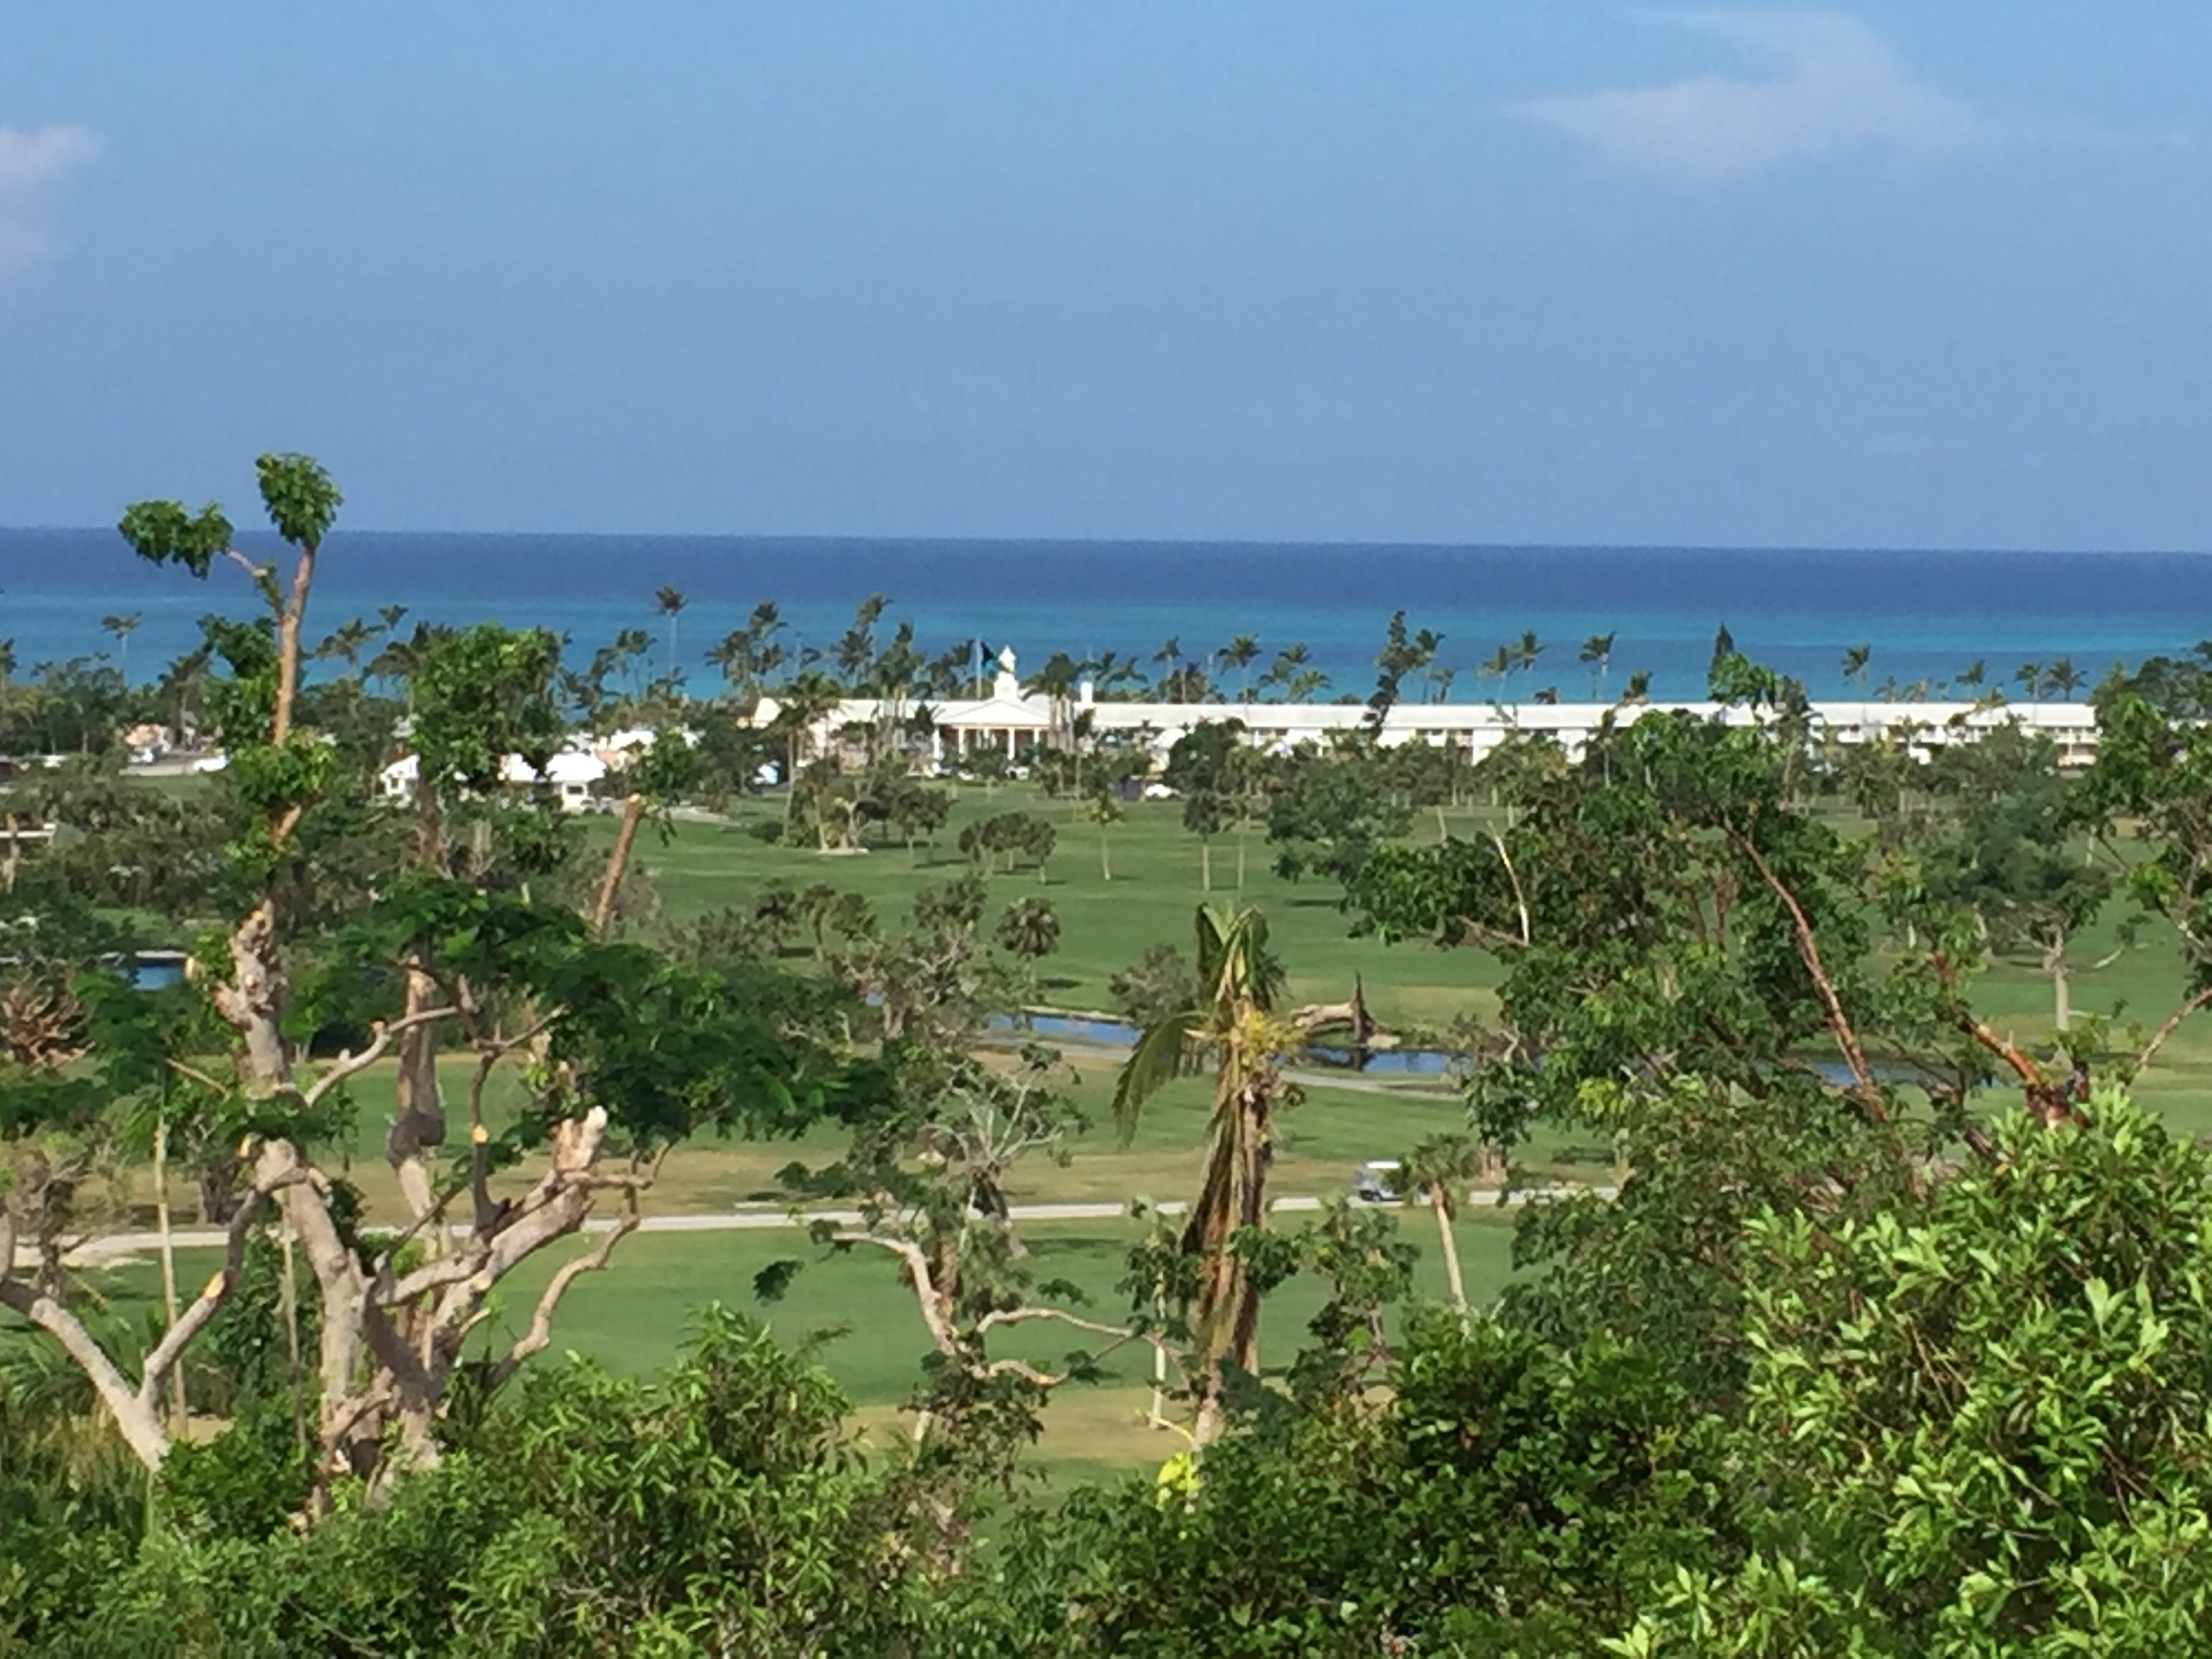 Land for Sale at Lot With Spectacular View - Lyford Cay Lyford Cay, Nassau And Paradise Island, Bahamas